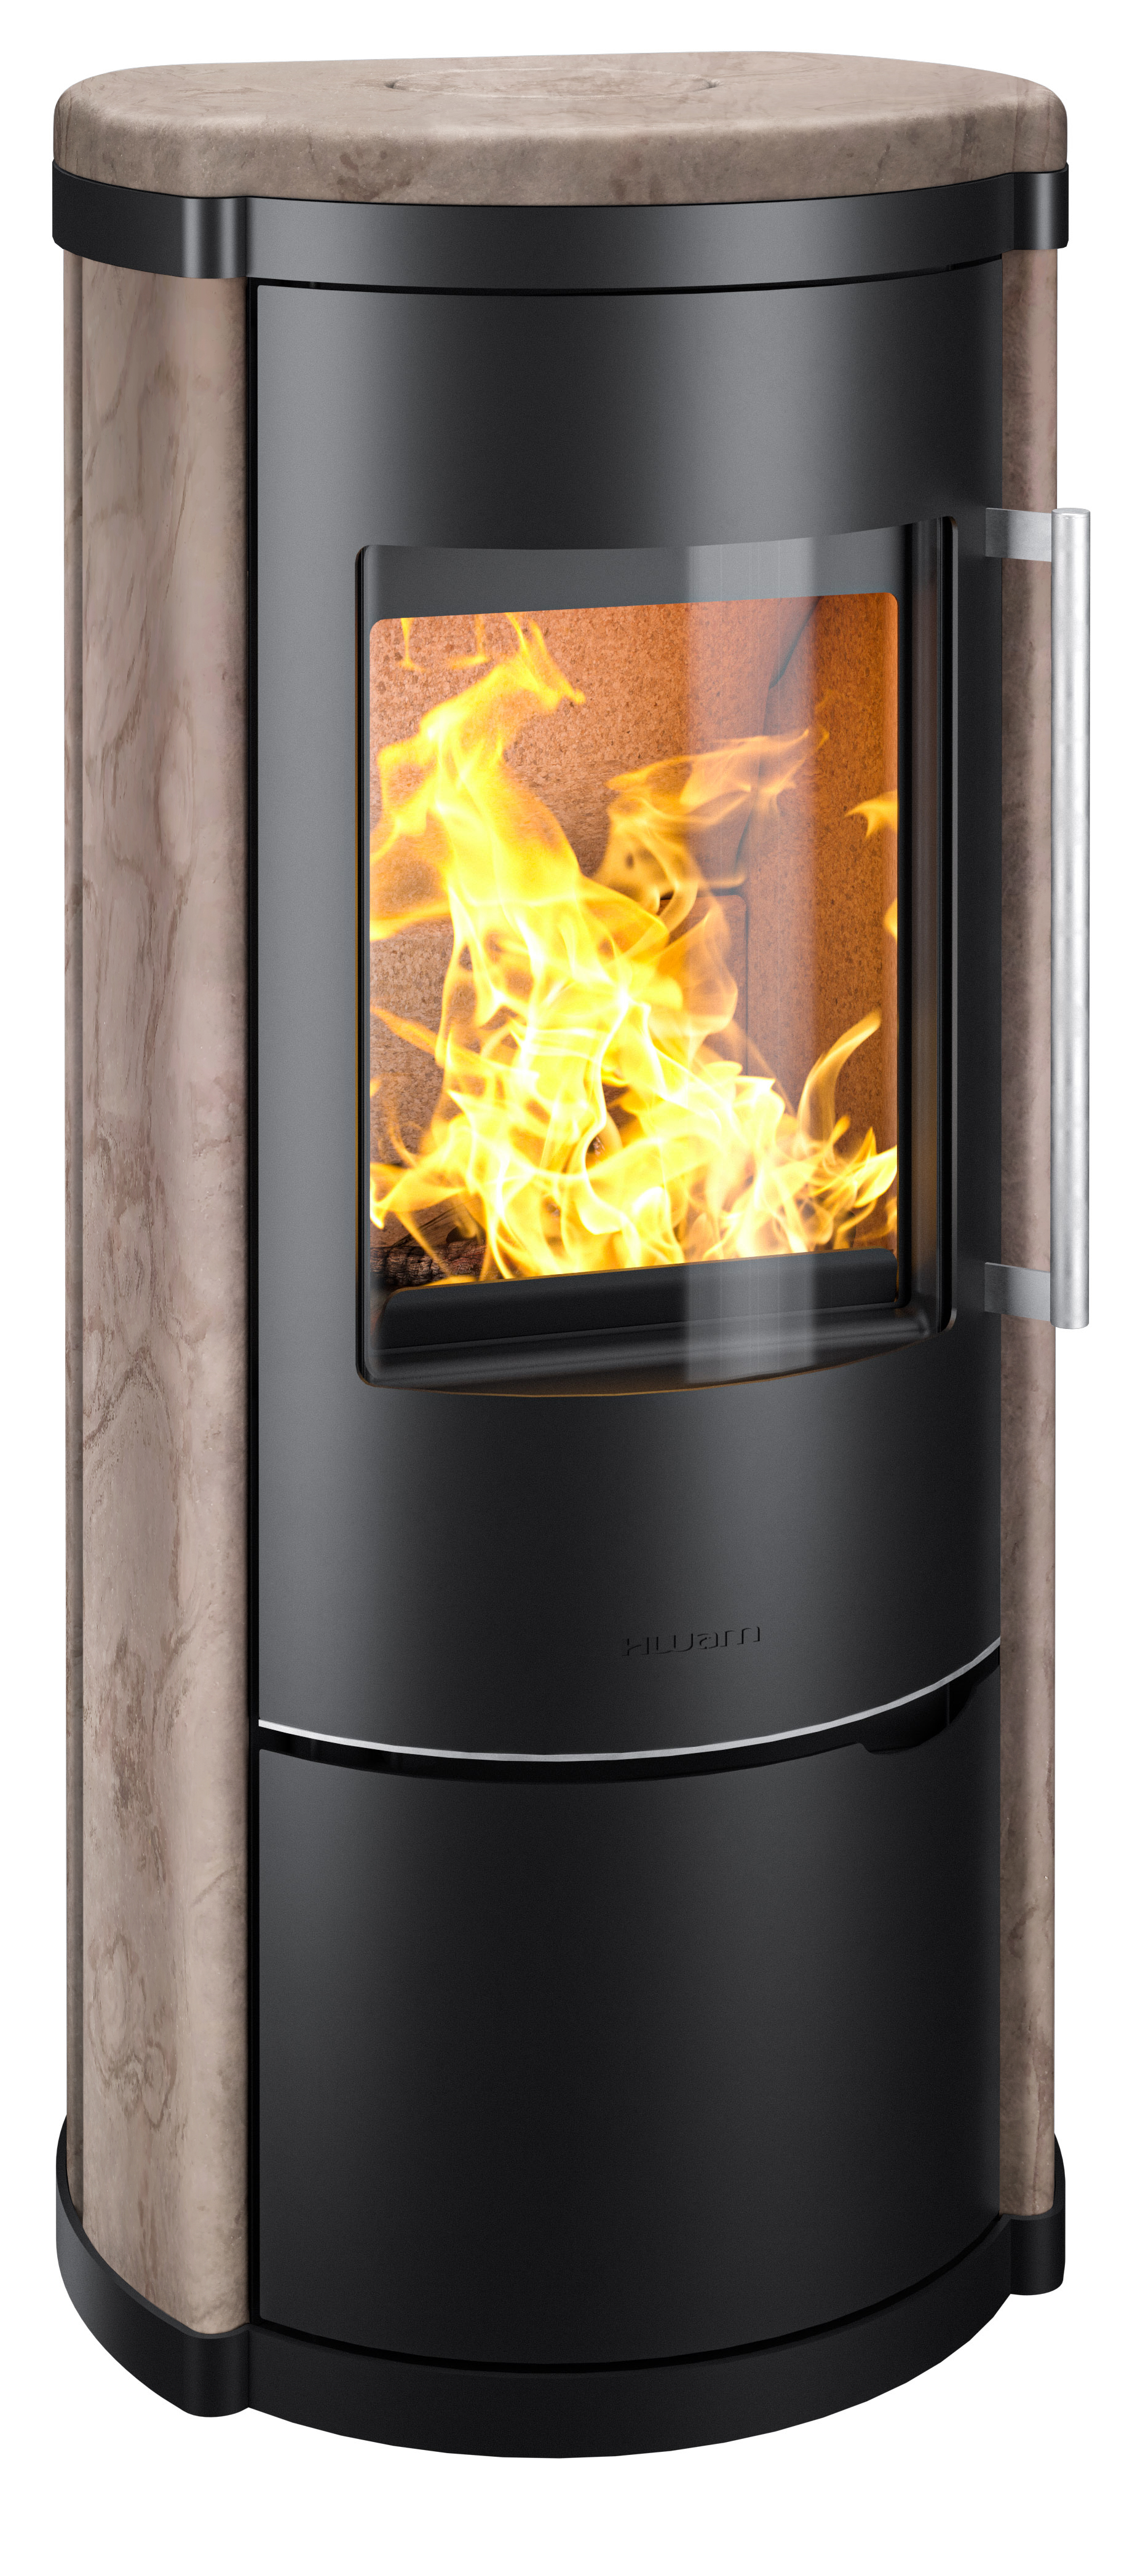 HWAM 4240 in black with Rosewood natural stone cladding